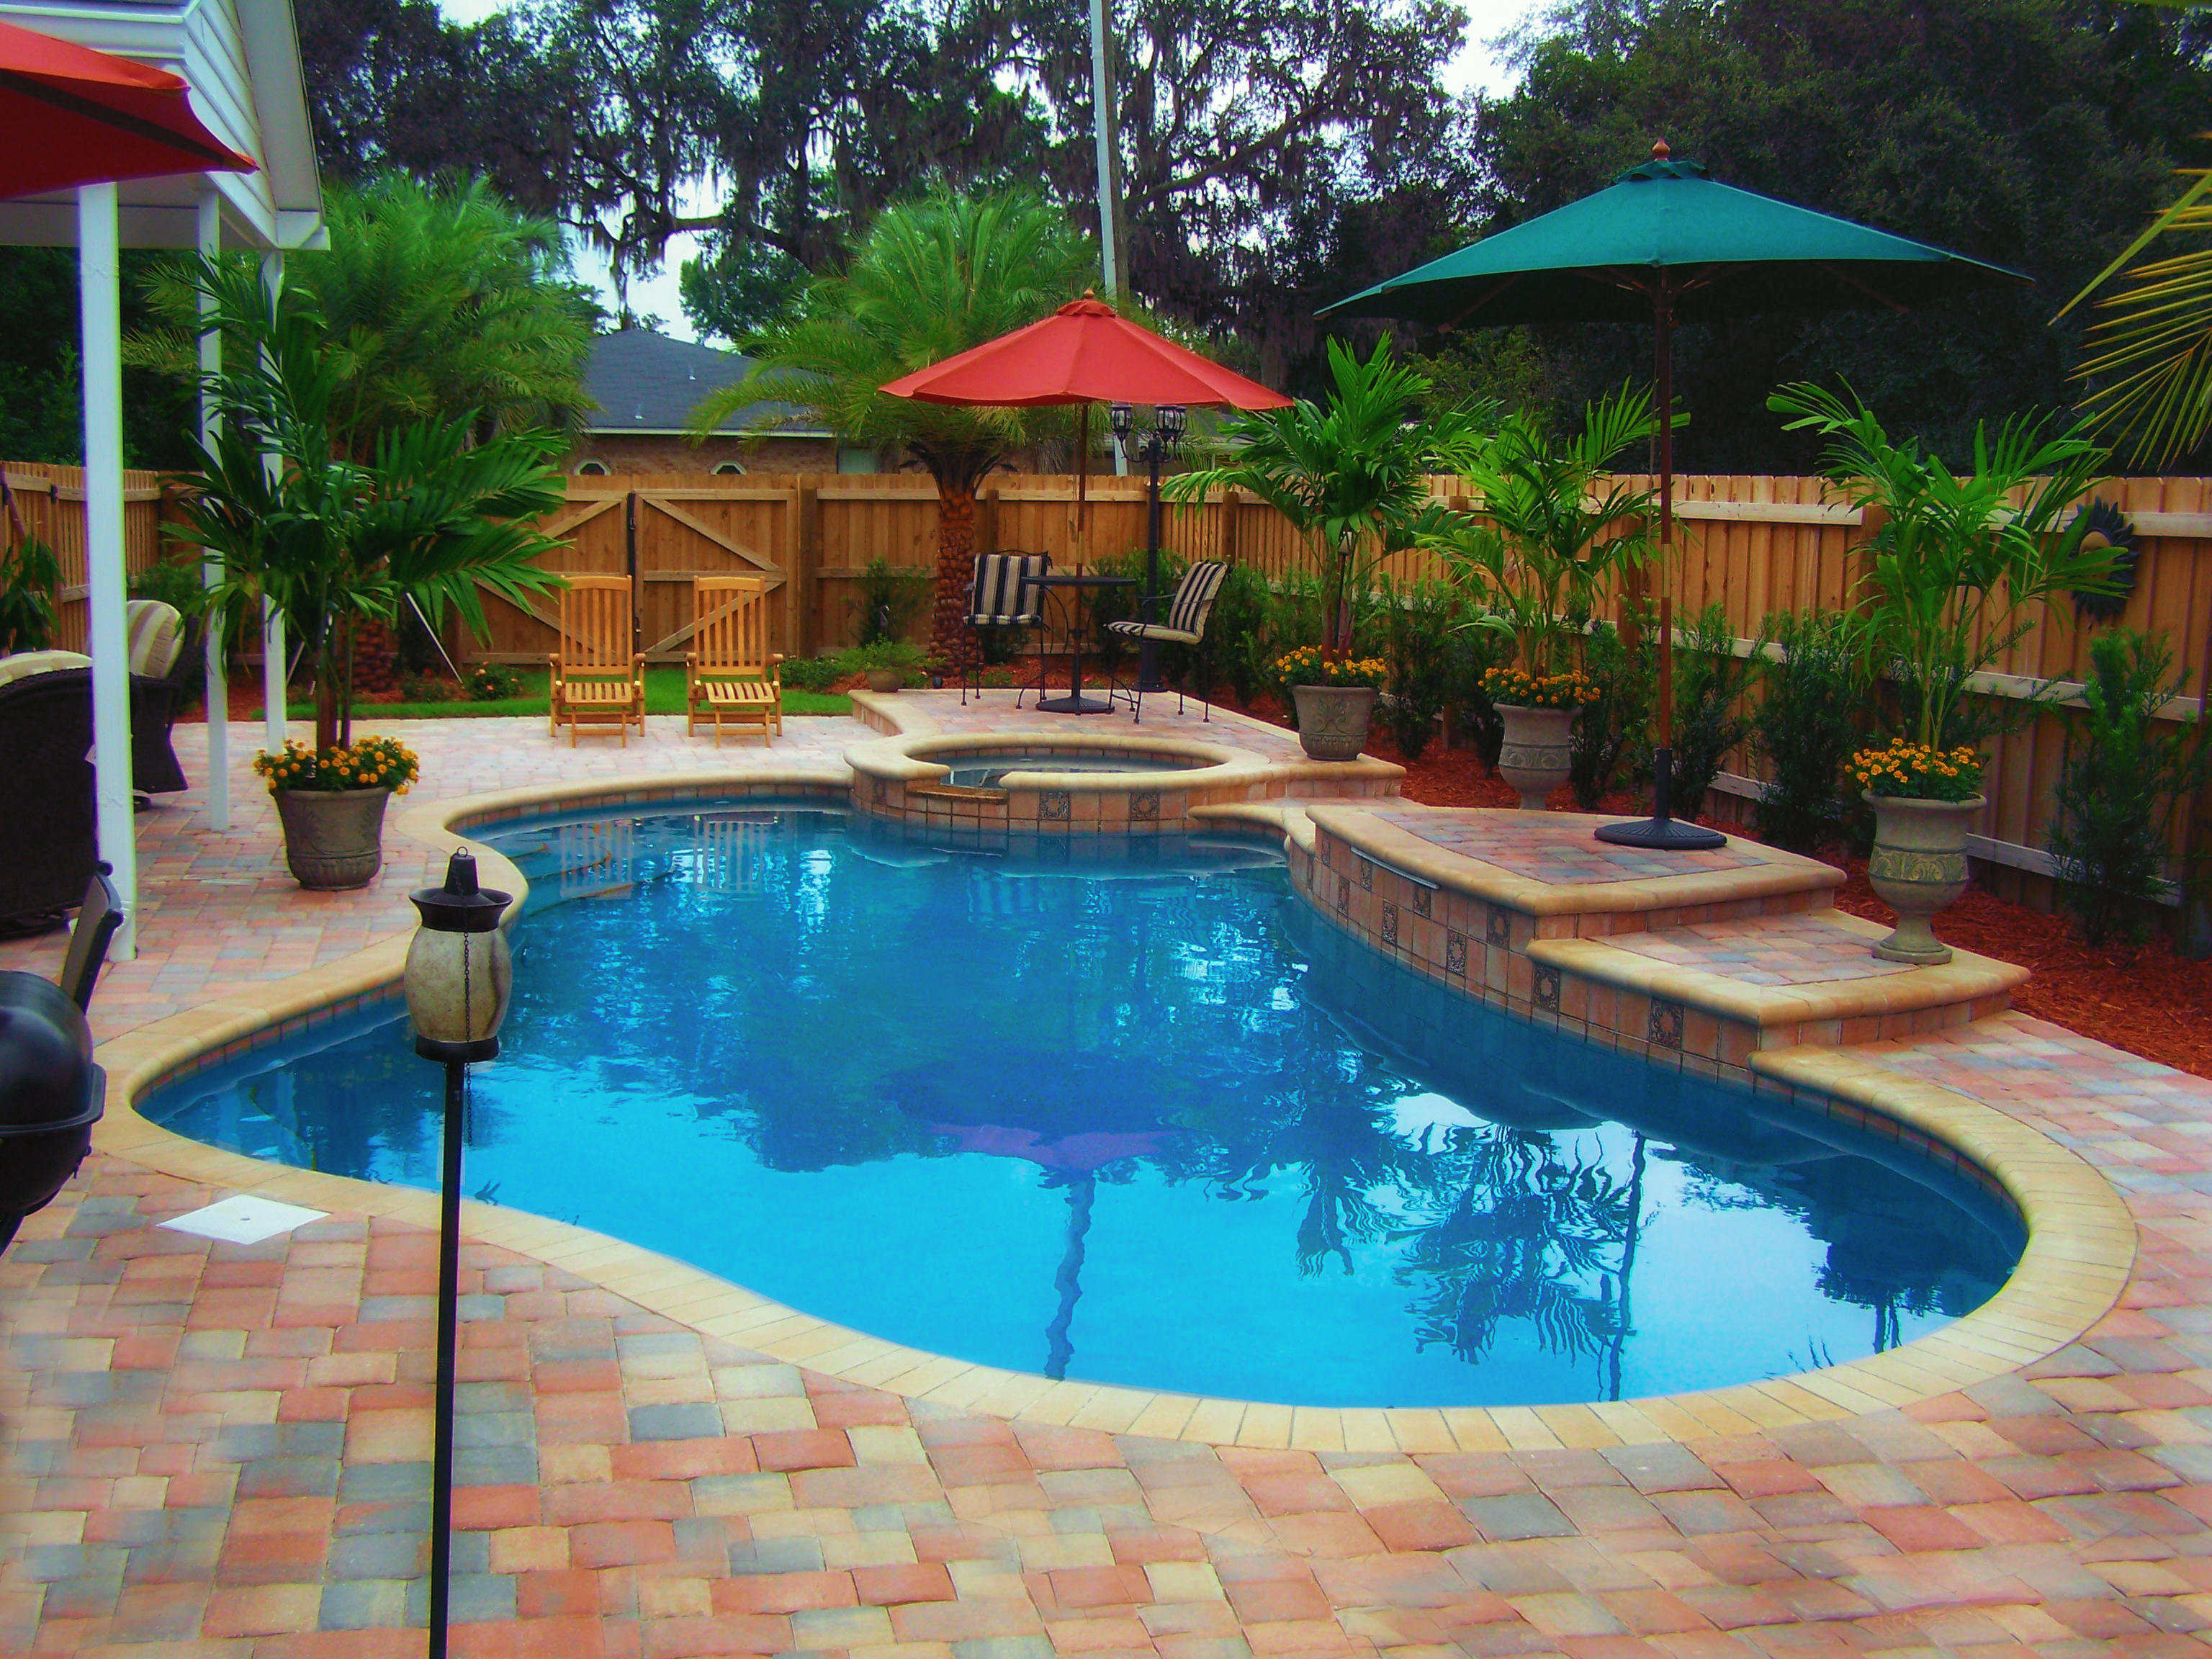 Paradise pool service jacksonville florida fl for Pool design services